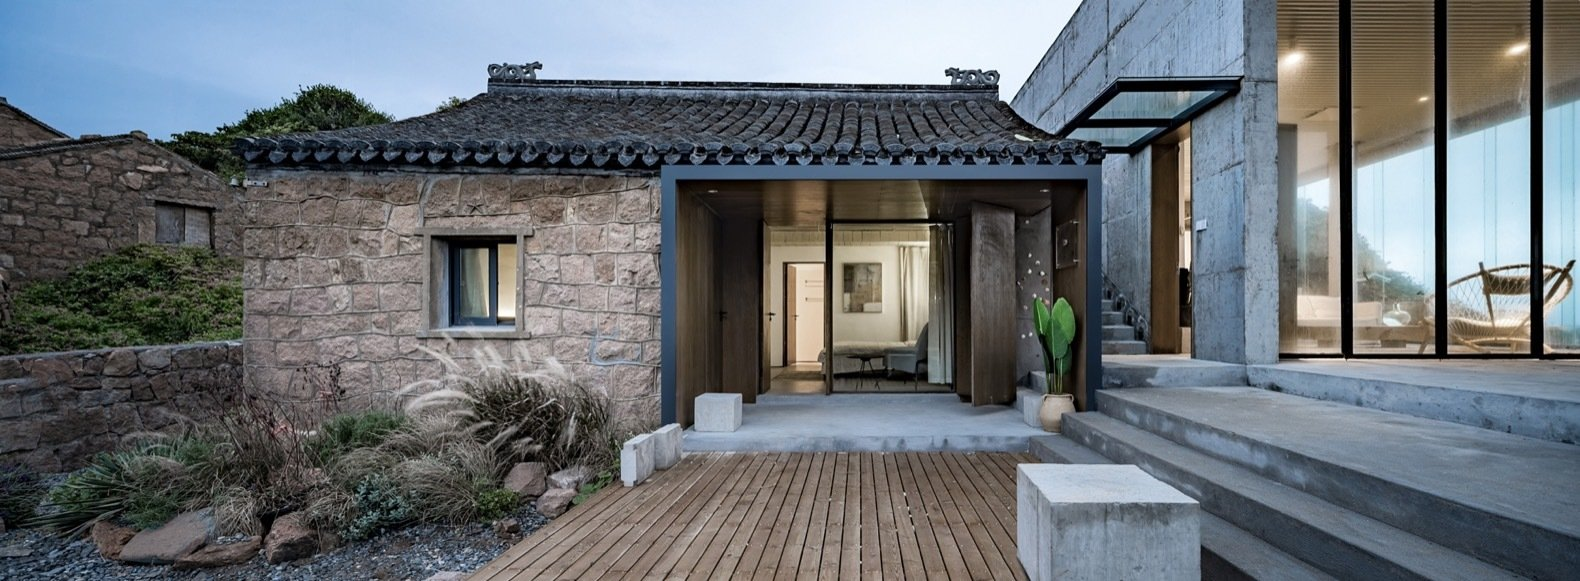 the-smaller-of-the-two-existing-buildings-this-renovated-structure-houses-two-bedrooms-a-glass-overhang-was-installed-above-the-pas